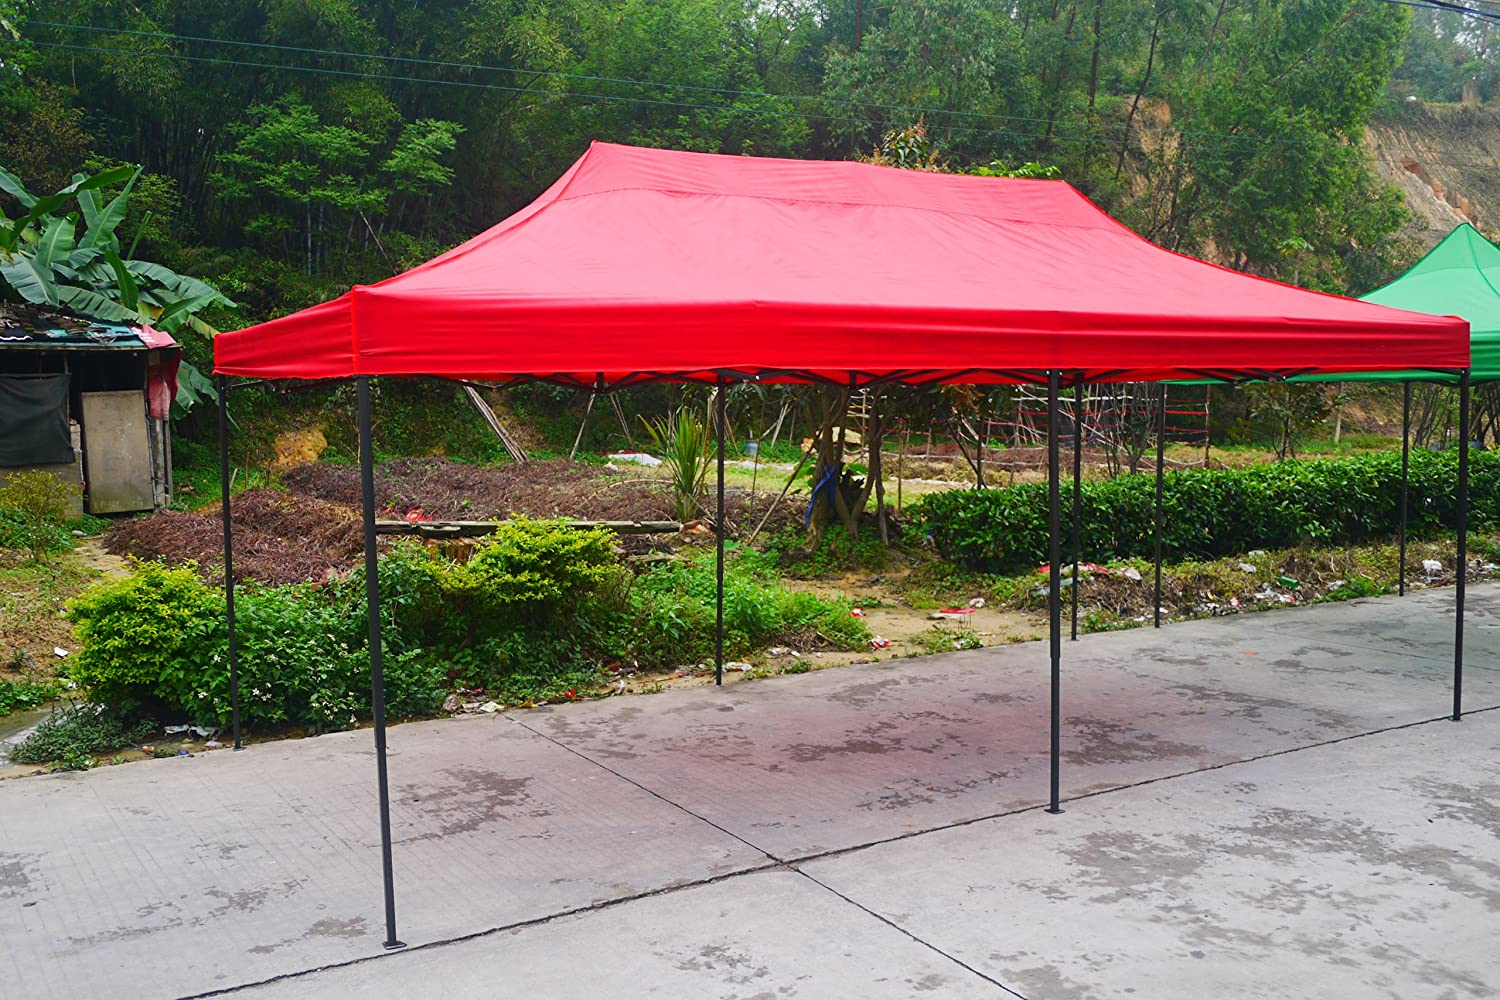 Amazon.com  American Phoenix Canopy Tent 10x20 foot Red Party Tent Gazebo Canopy Commercial Fair Shelter Car Shelter Wedding Party Easy Pop Up - Red ... & Amazon.com : American Phoenix Canopy Tent 10x20 foot Red Party ...